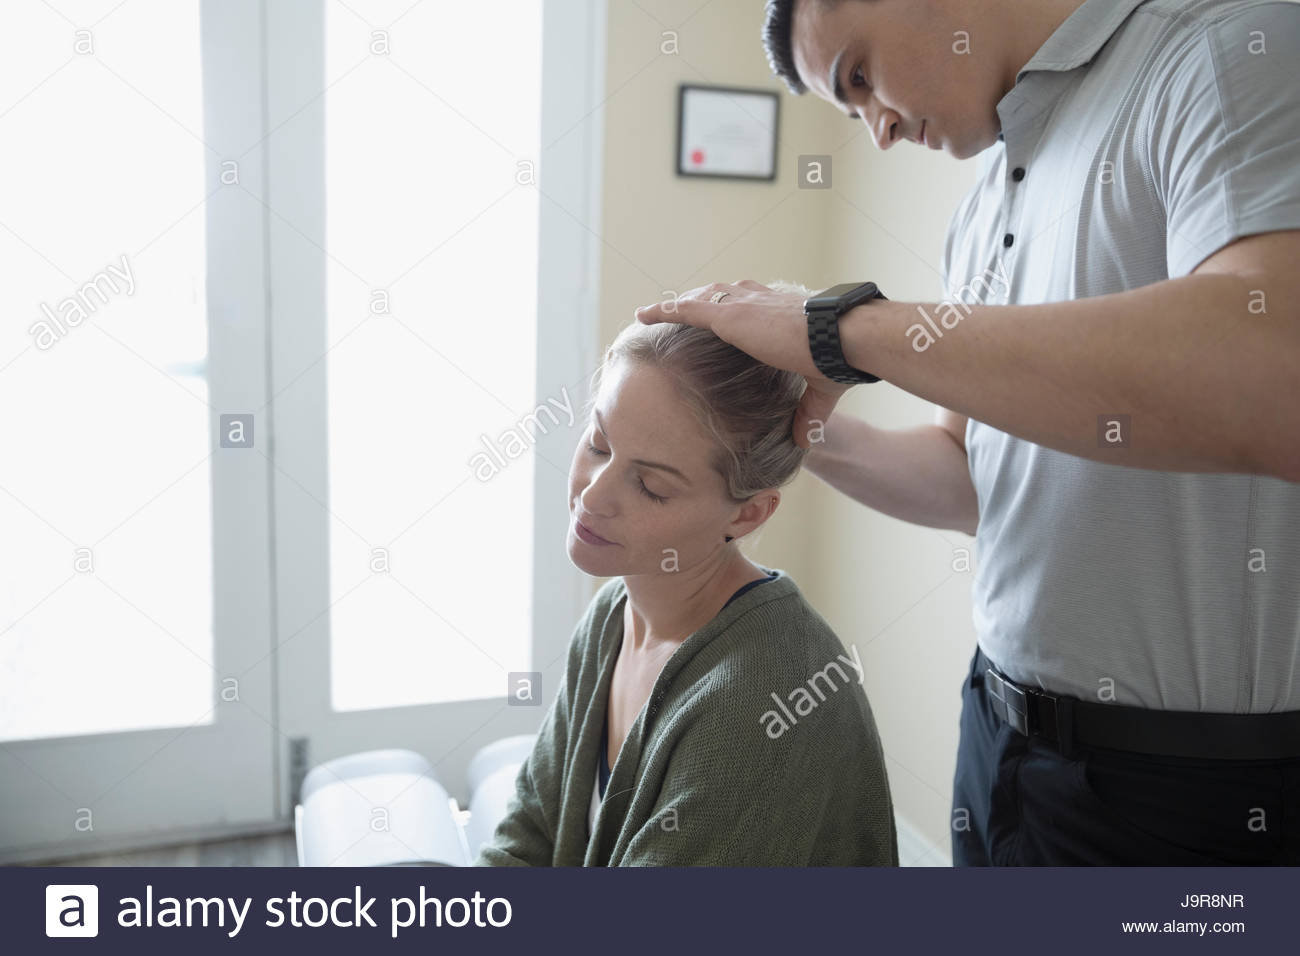 Physiotherapist stretching neck of woman in clinic examination room - Stock Image